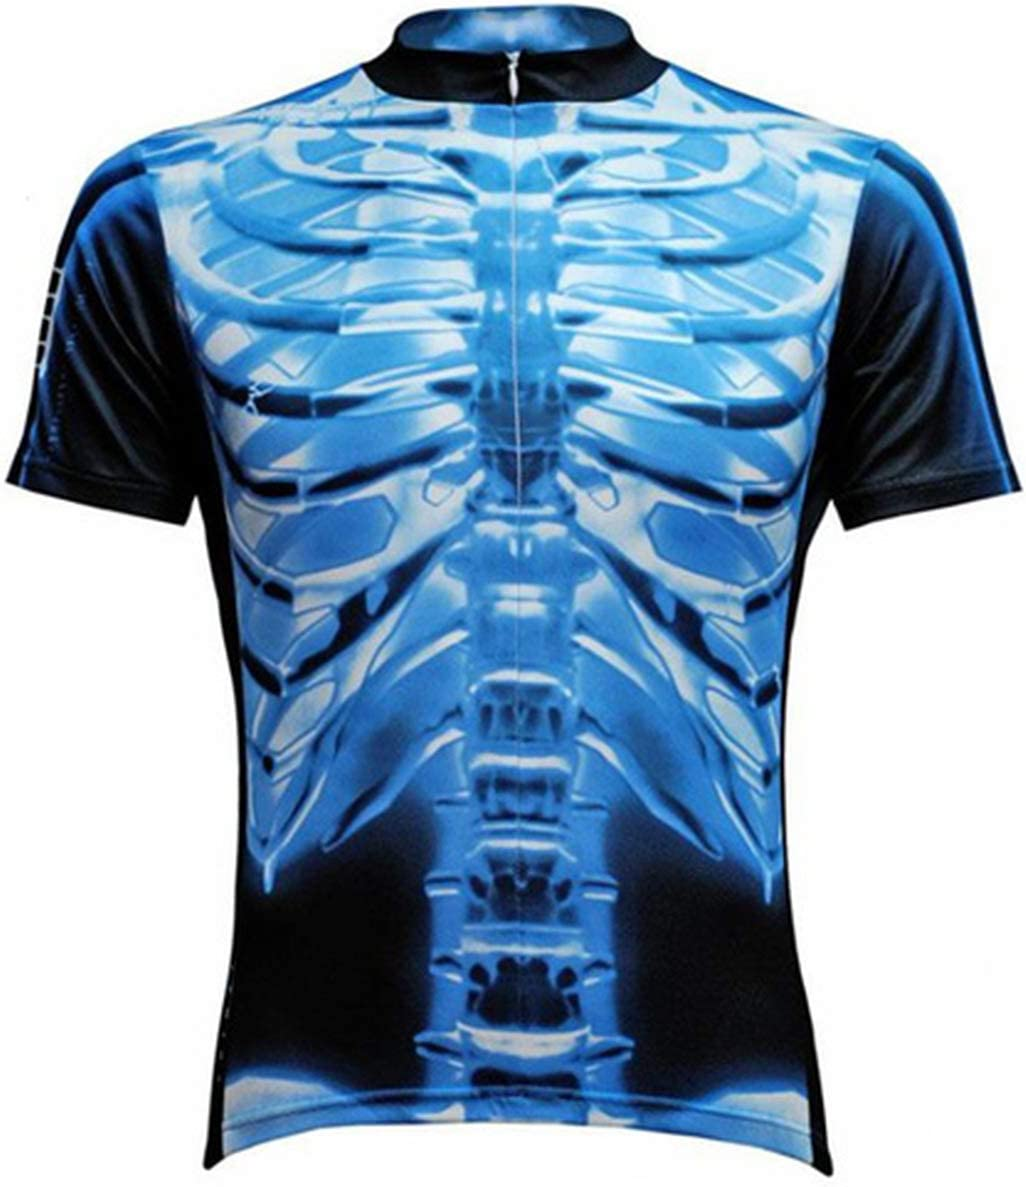 Primal Wear X-Ray Skeleton Cycling Jersey Mens Short Sleeve